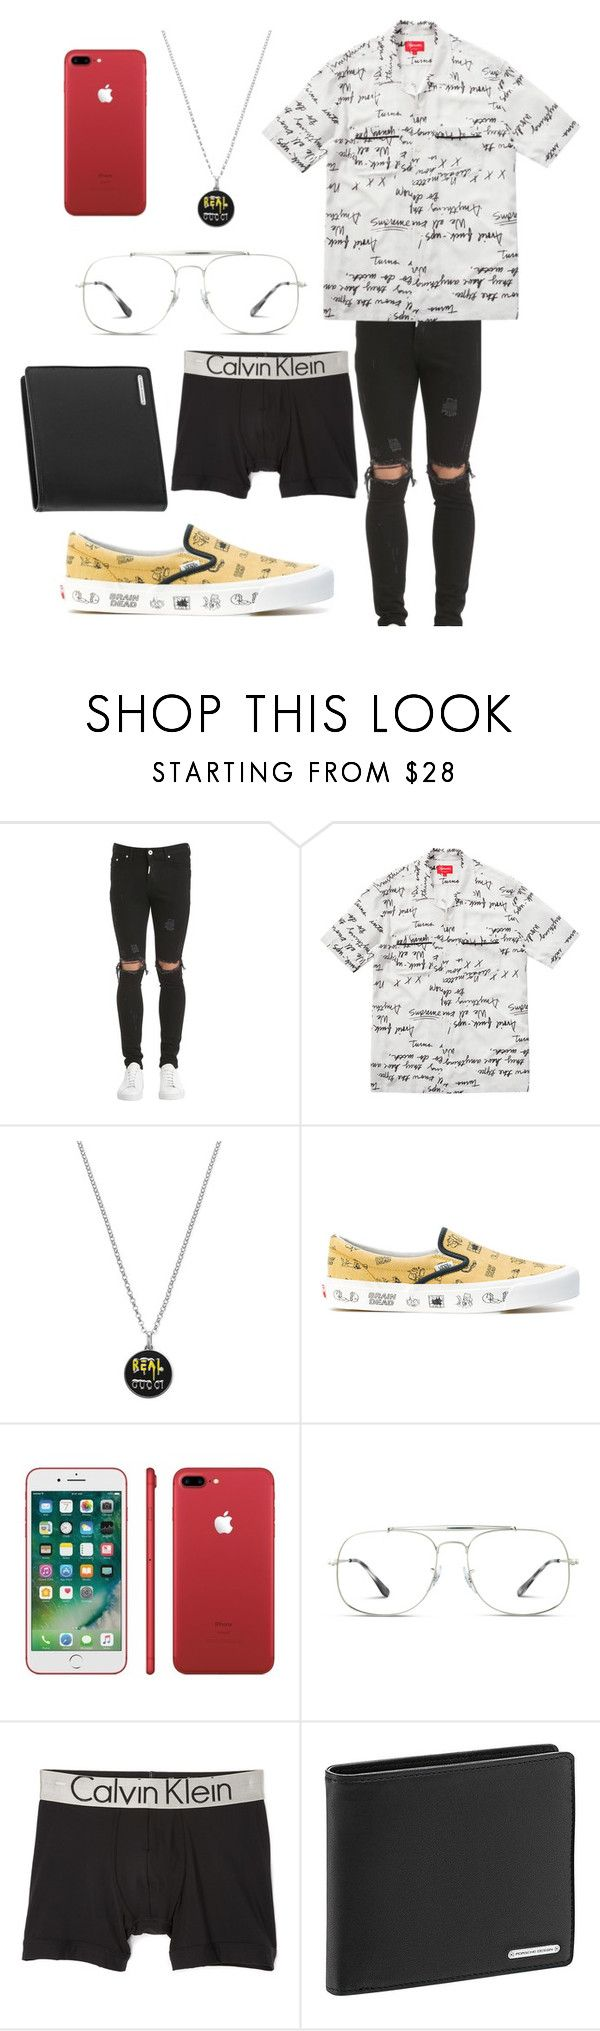 """Kylie"" by vejacomotenpovoa ❤ liked on Polyvore featuring Gucci, Vans, Ray-Ban, Calvin Klein Underwear, Porsche Design, men's fashion and menswear"